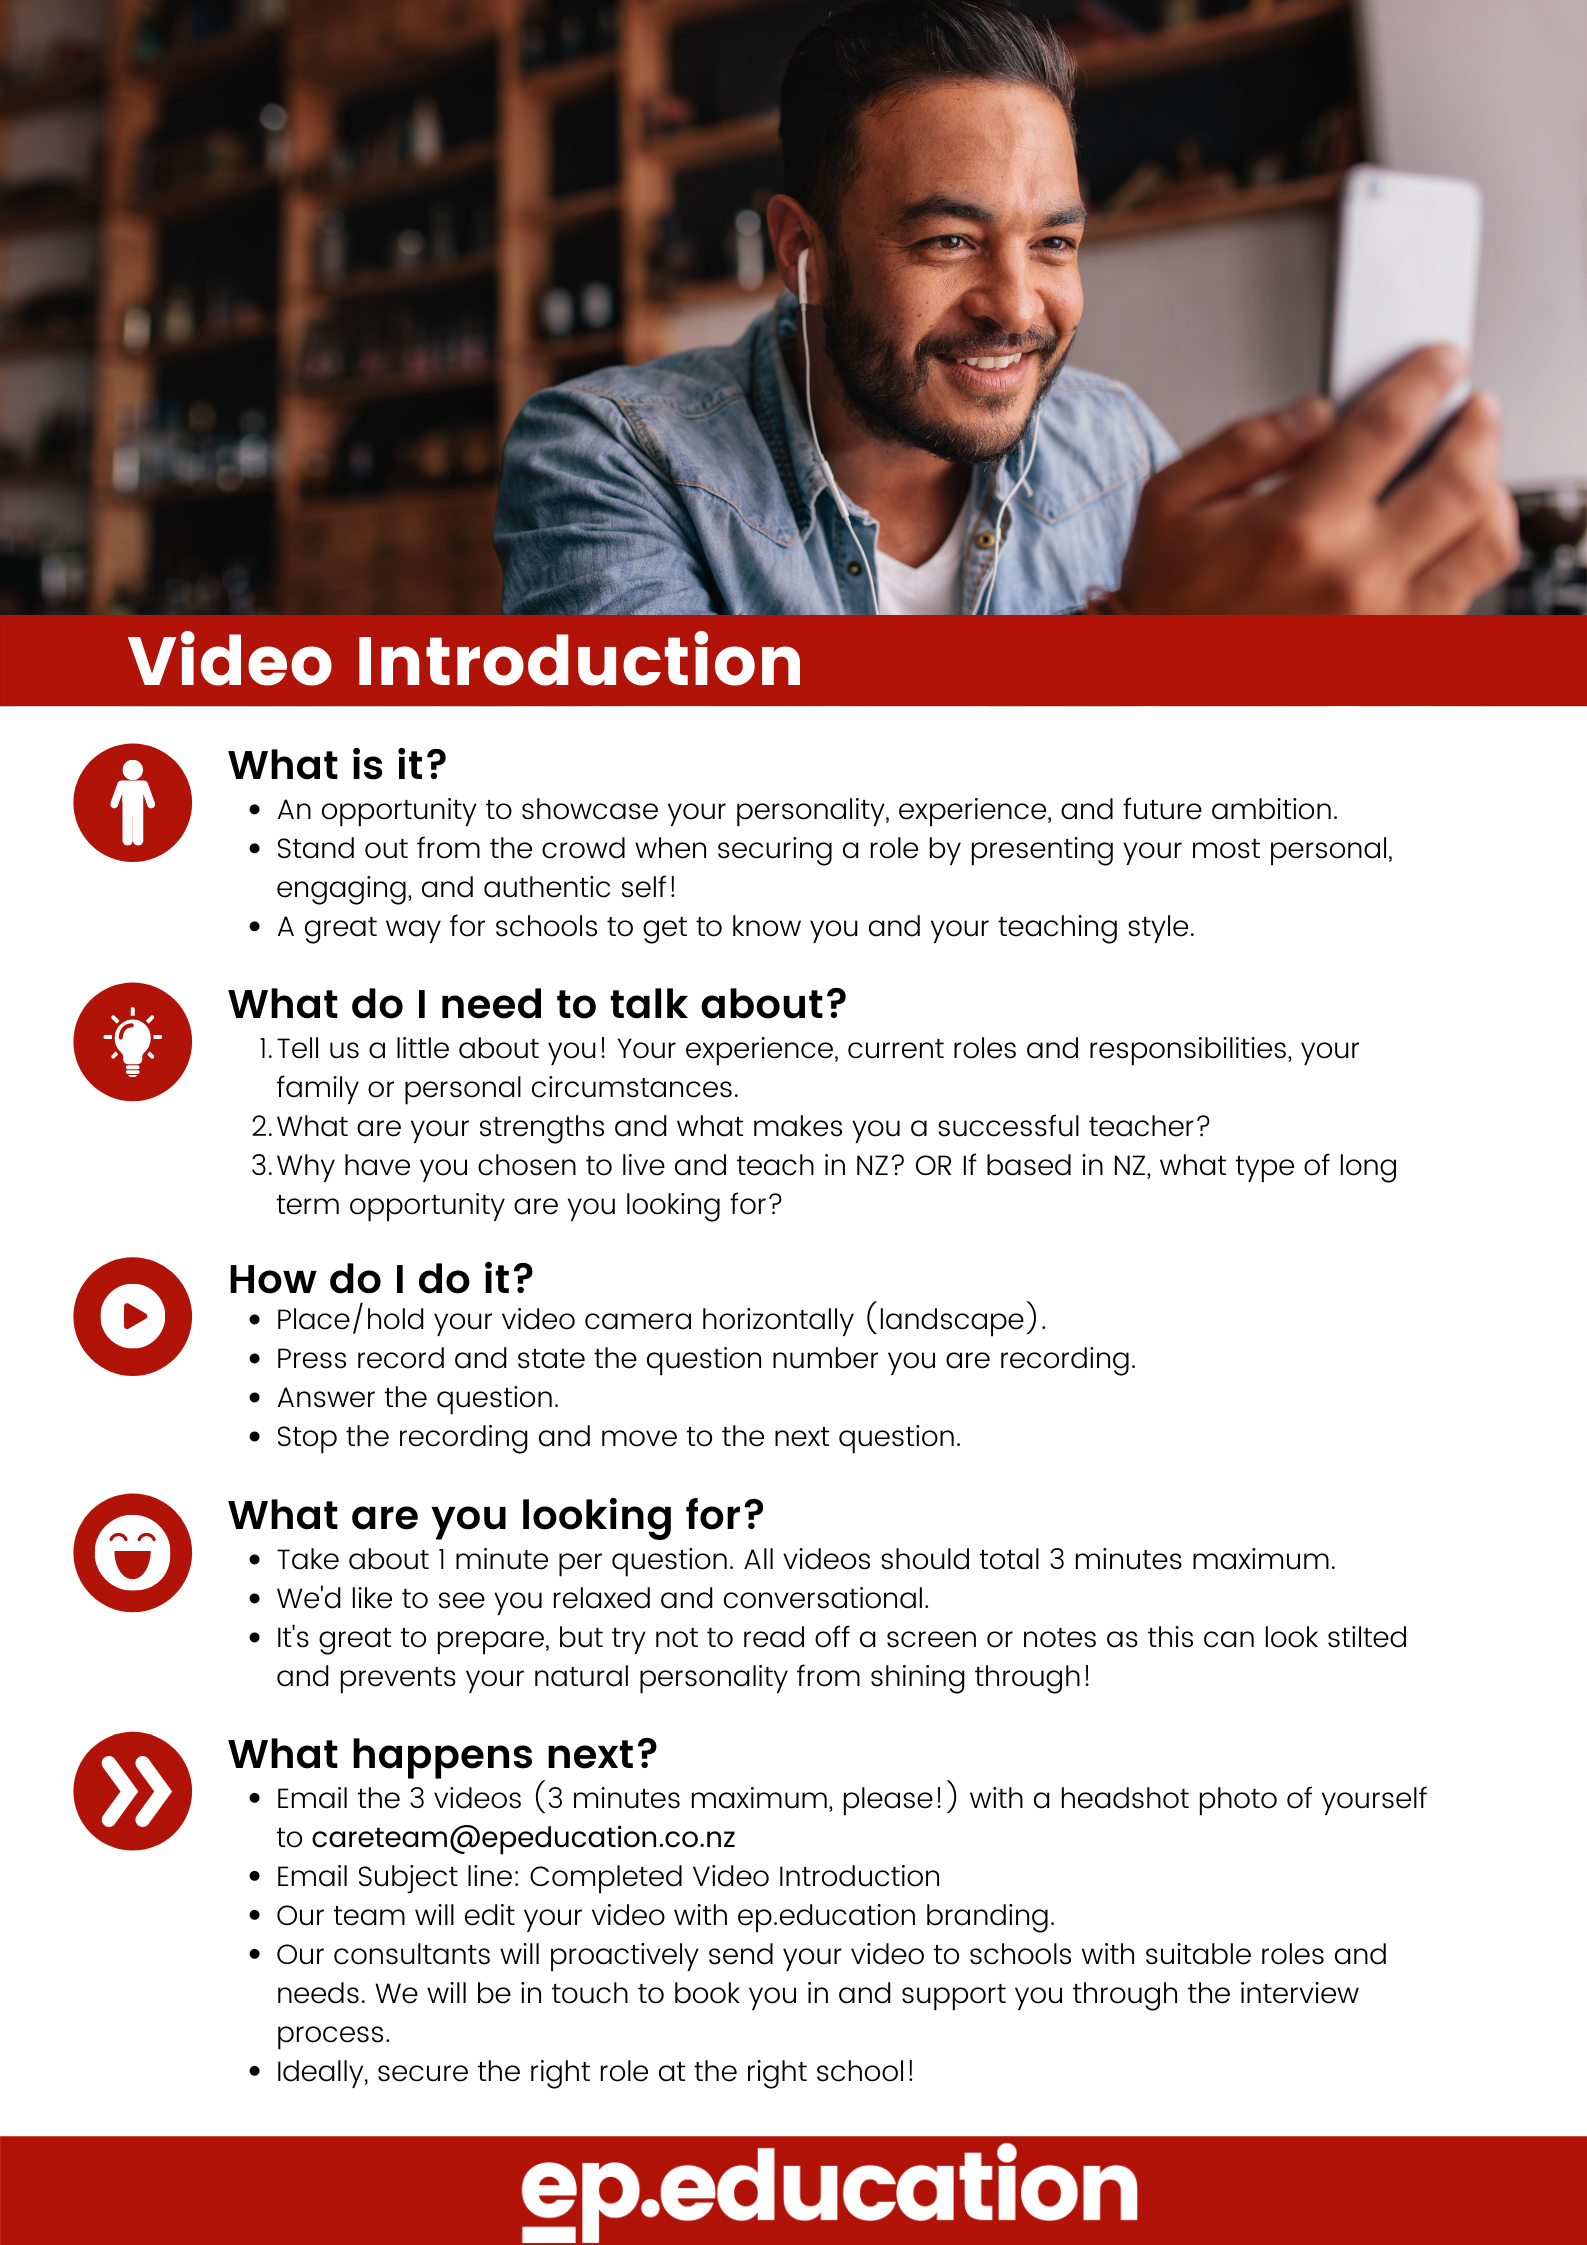 Video Introduction Instructions